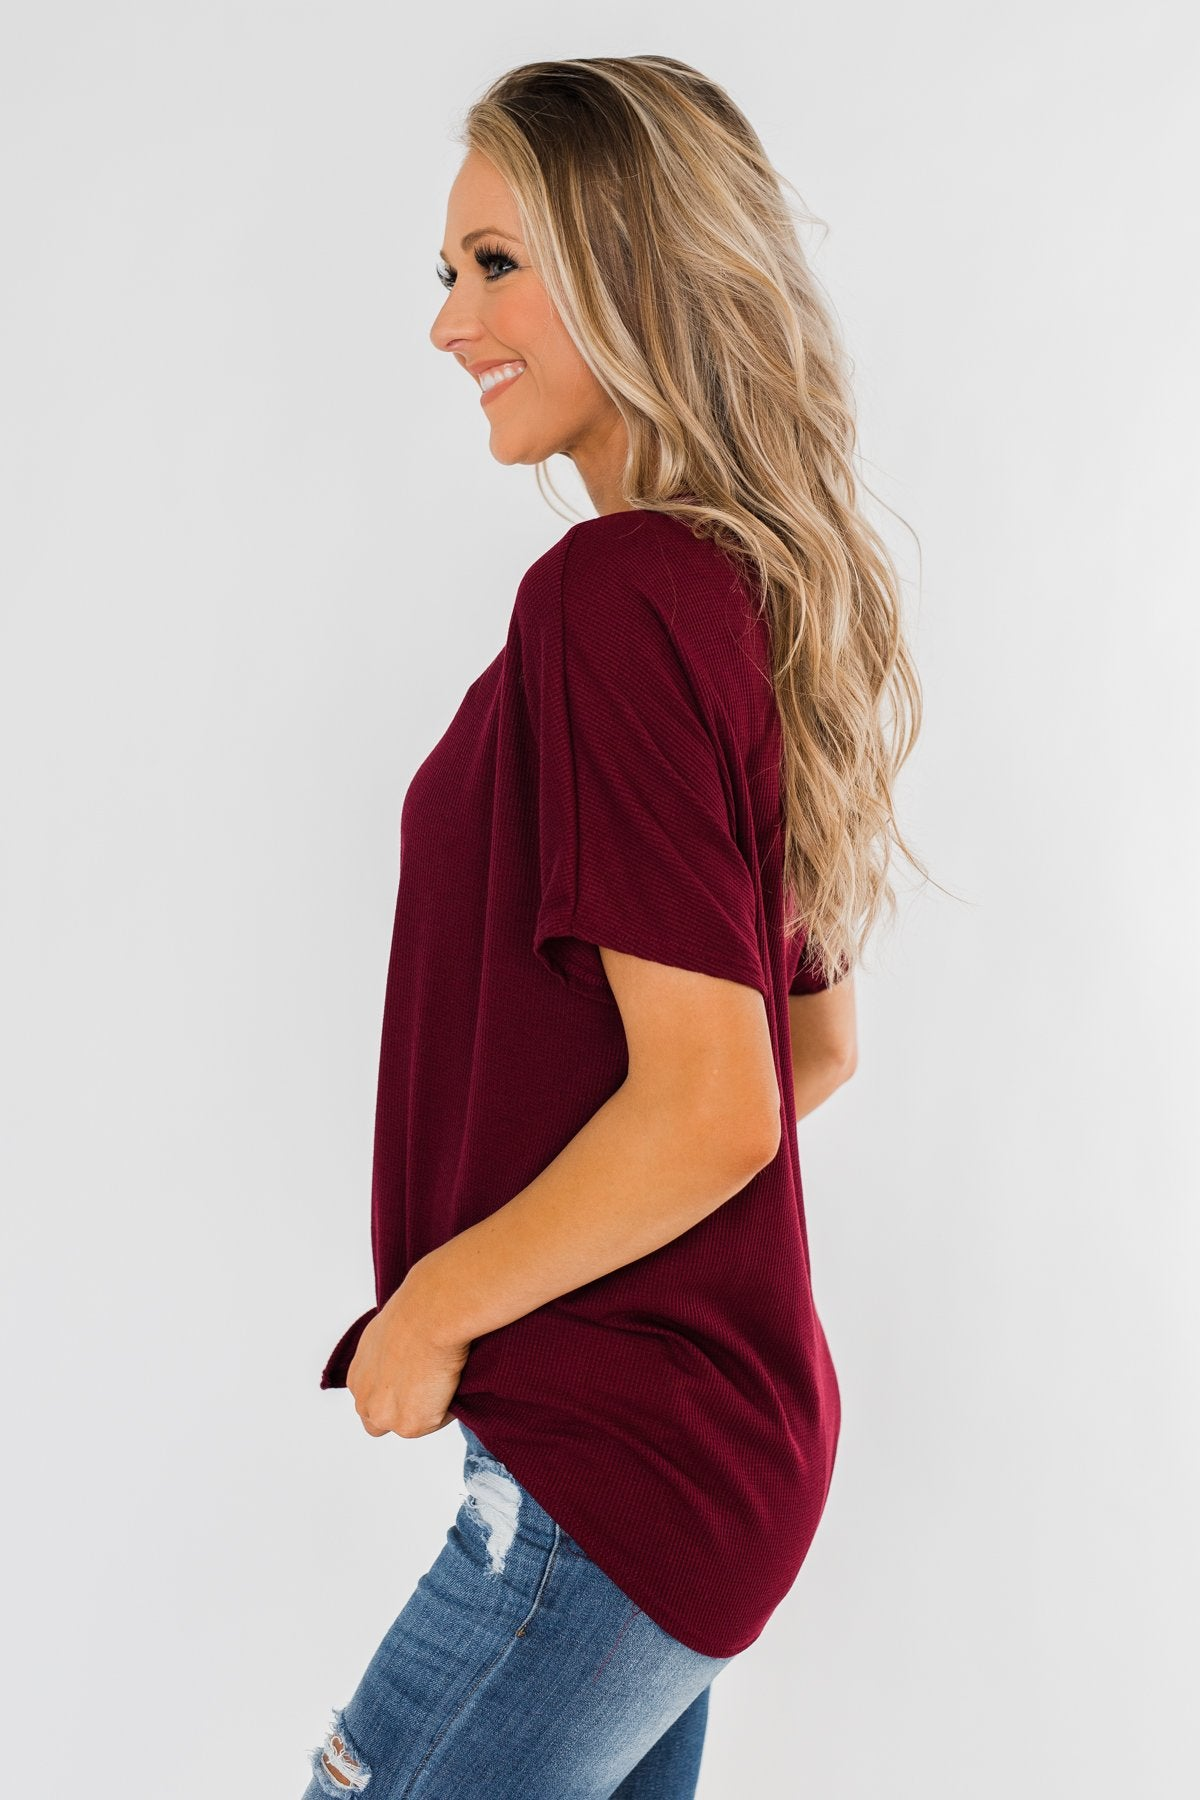 Looking Good Thermal Short Sleeve Top- Burgundy